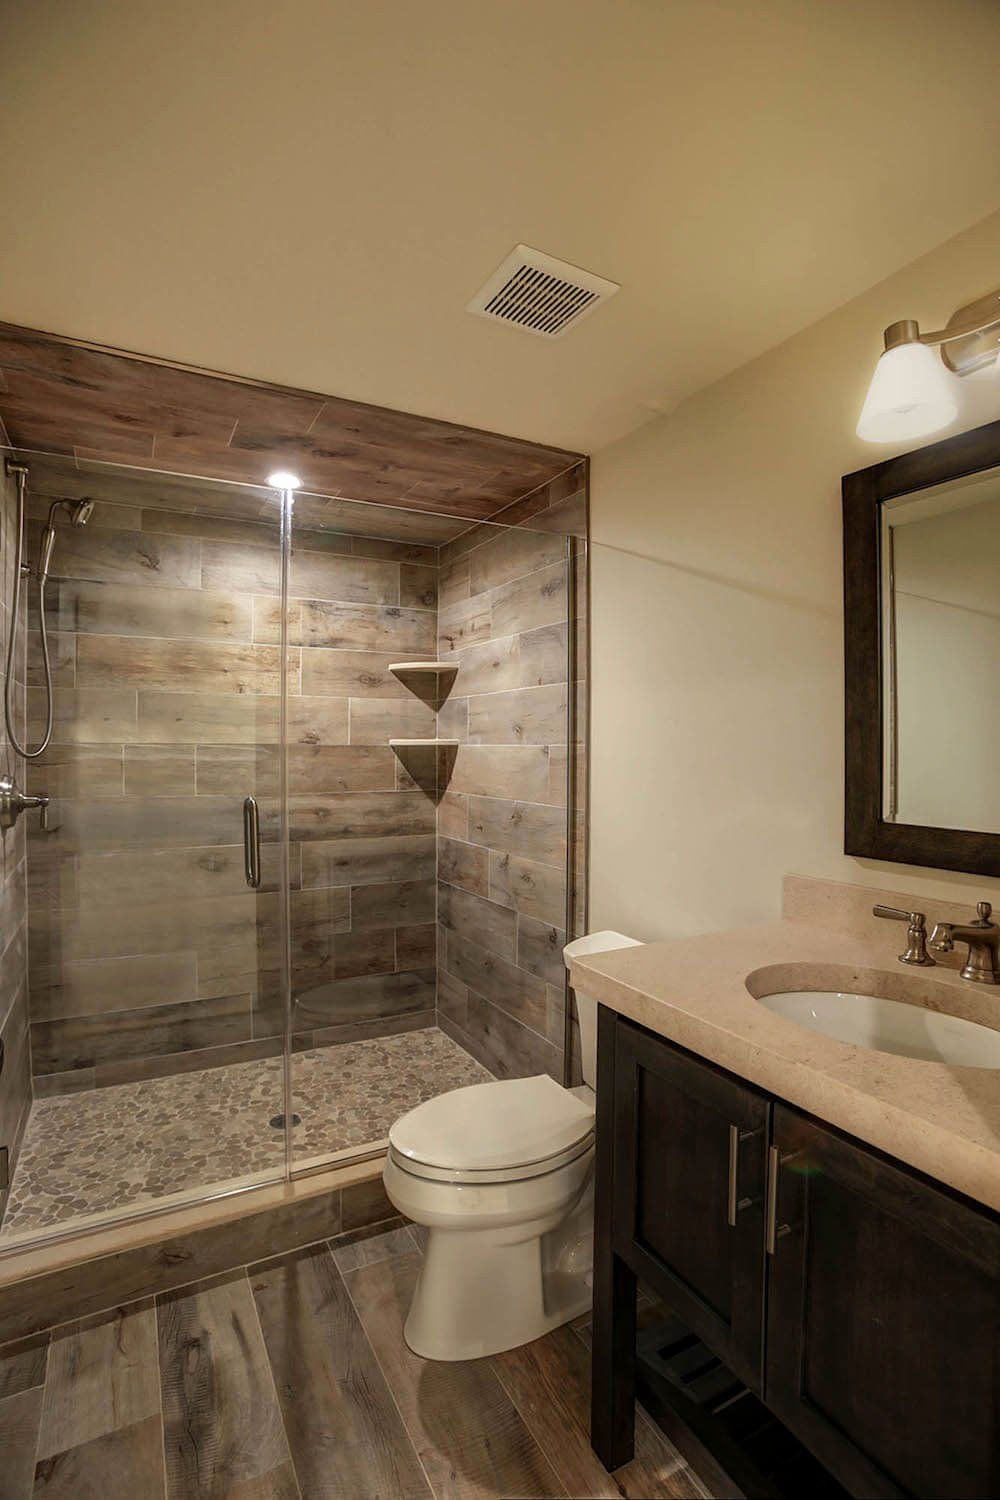 Average Cost To Add A Bedroom Luxury 2020 Basement Remodeling Costs In 2020 Cost To Finish Basement Basement Remodel Cost Bathroom Cost